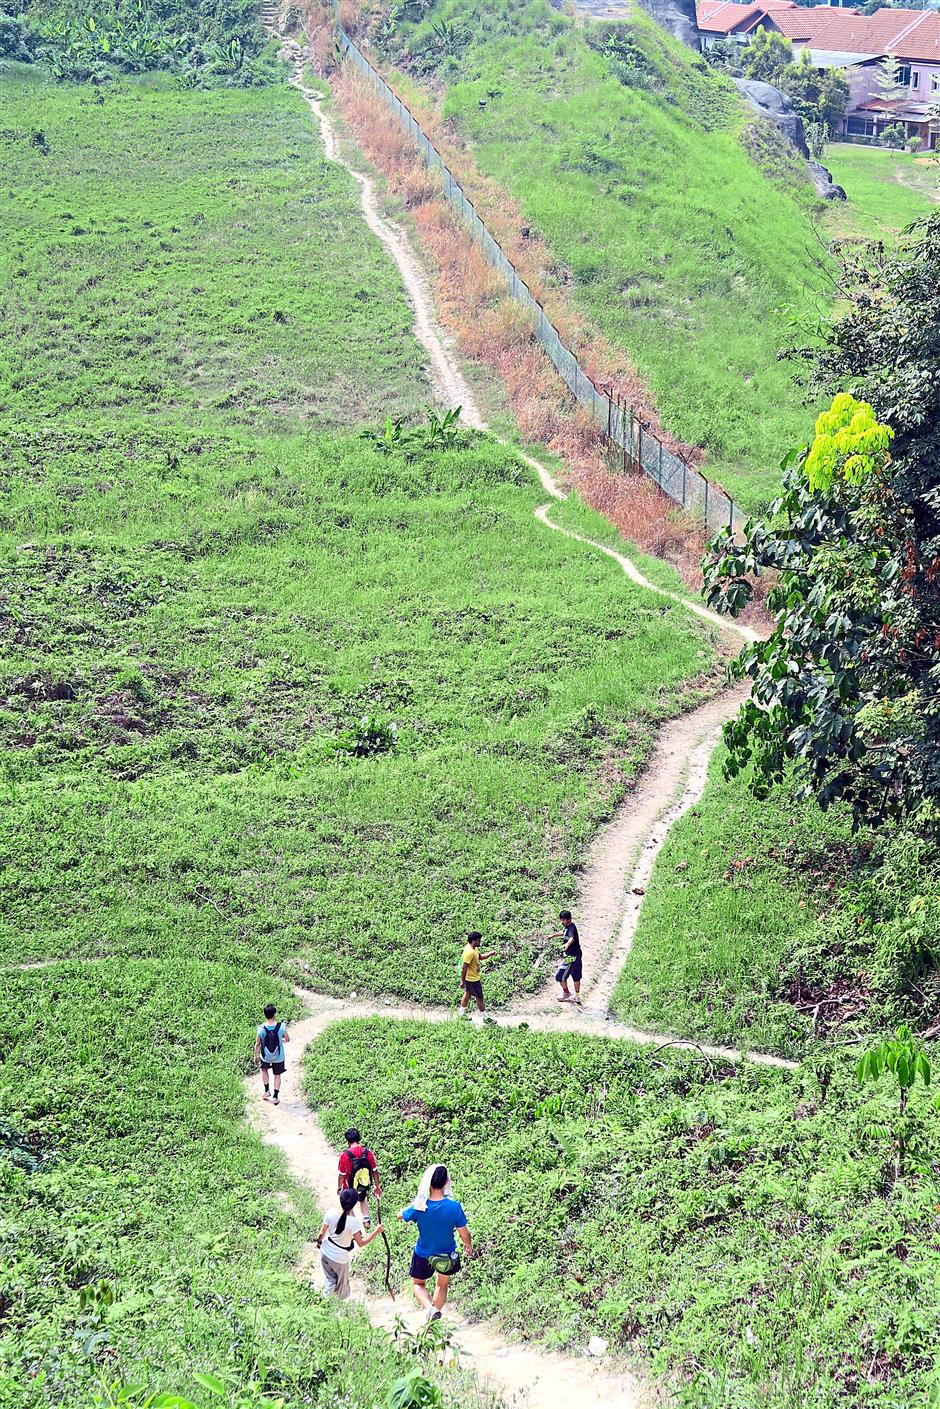 Trek to the top: Wide open vistas can be seen on the Sri Bintang trail.